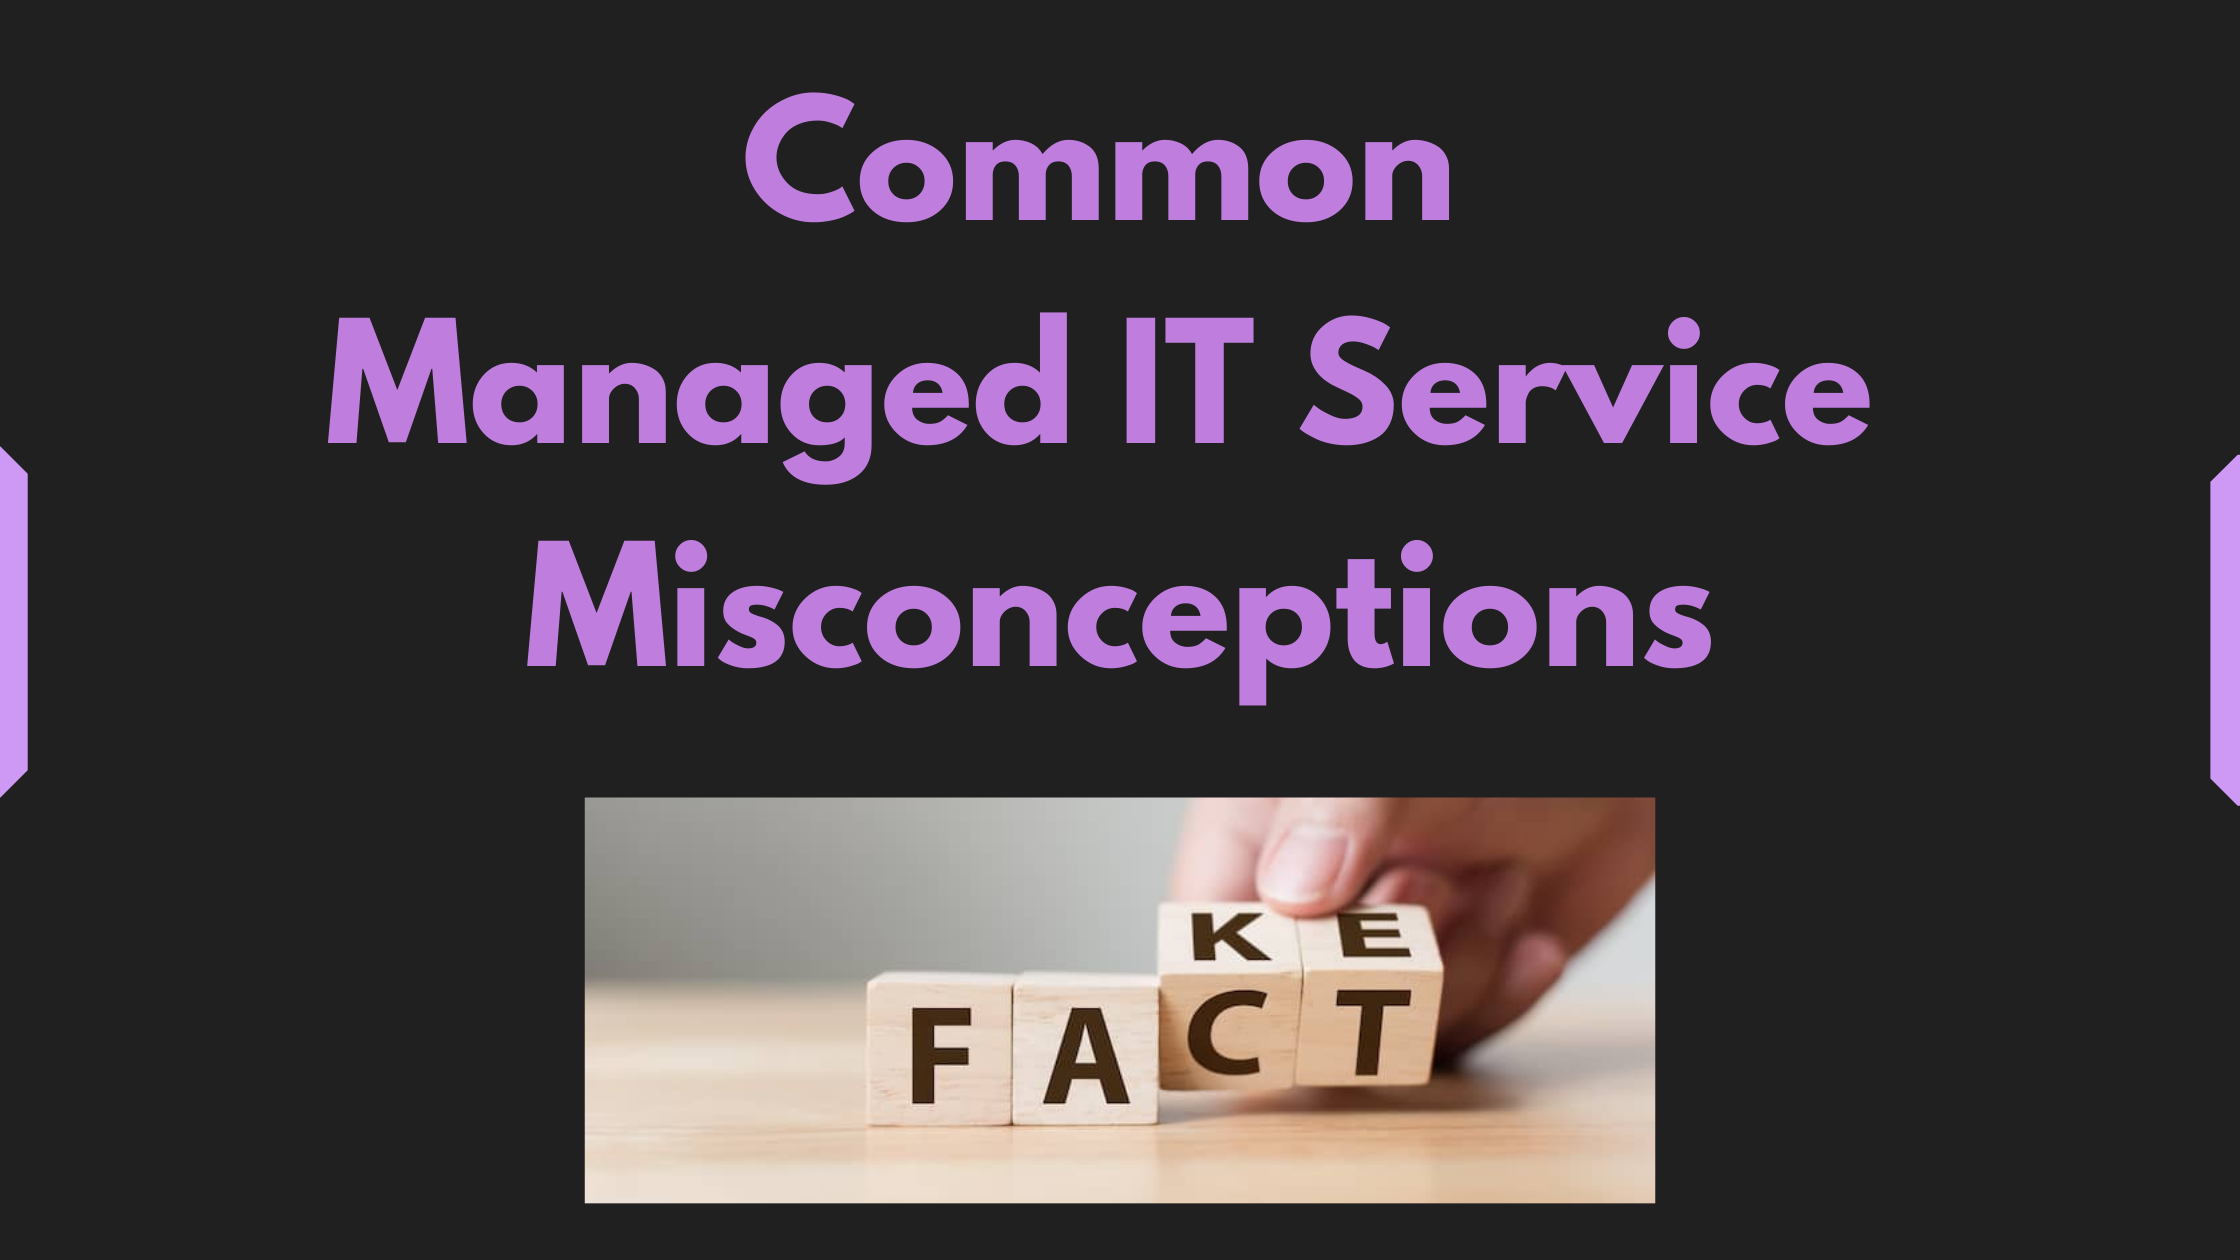 Common Managed IT Service Misconceptions